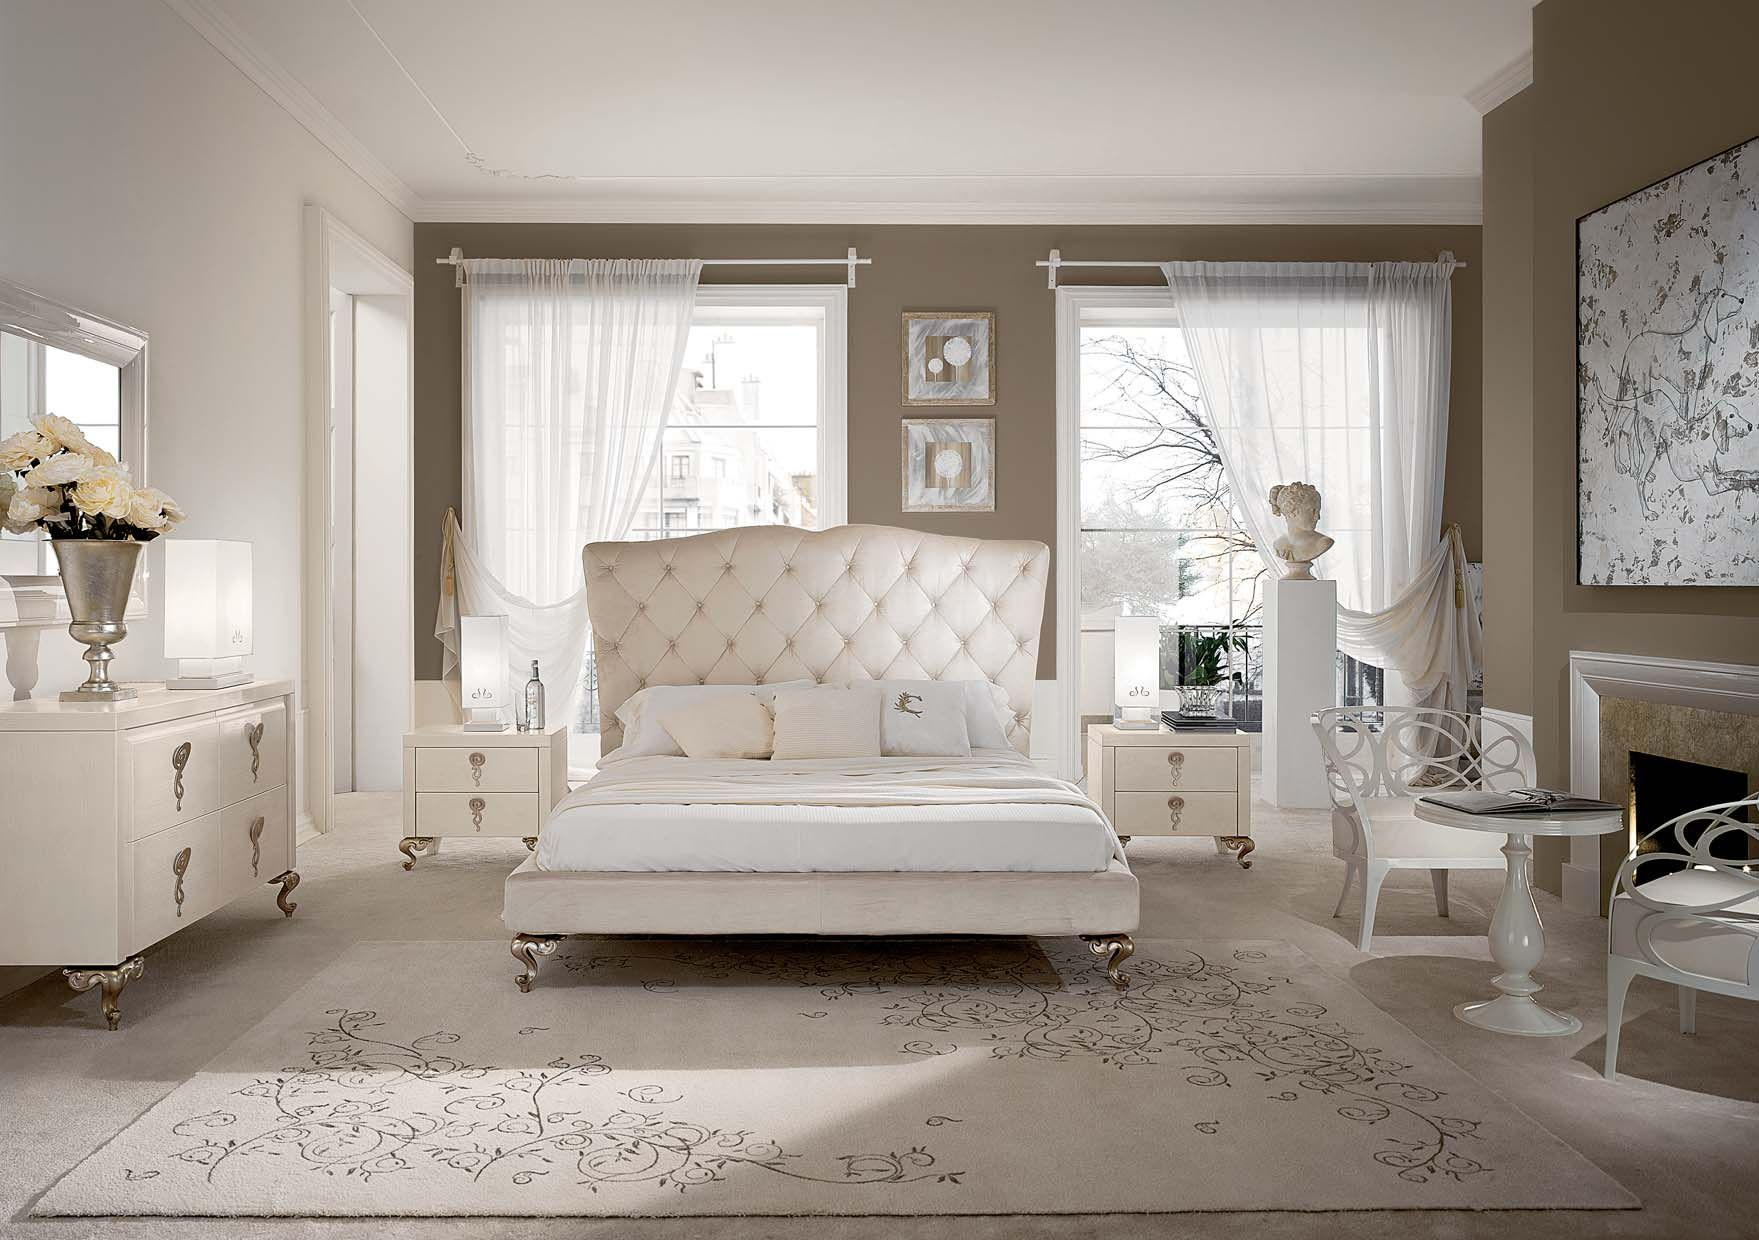 modele chambres a coucher baroques